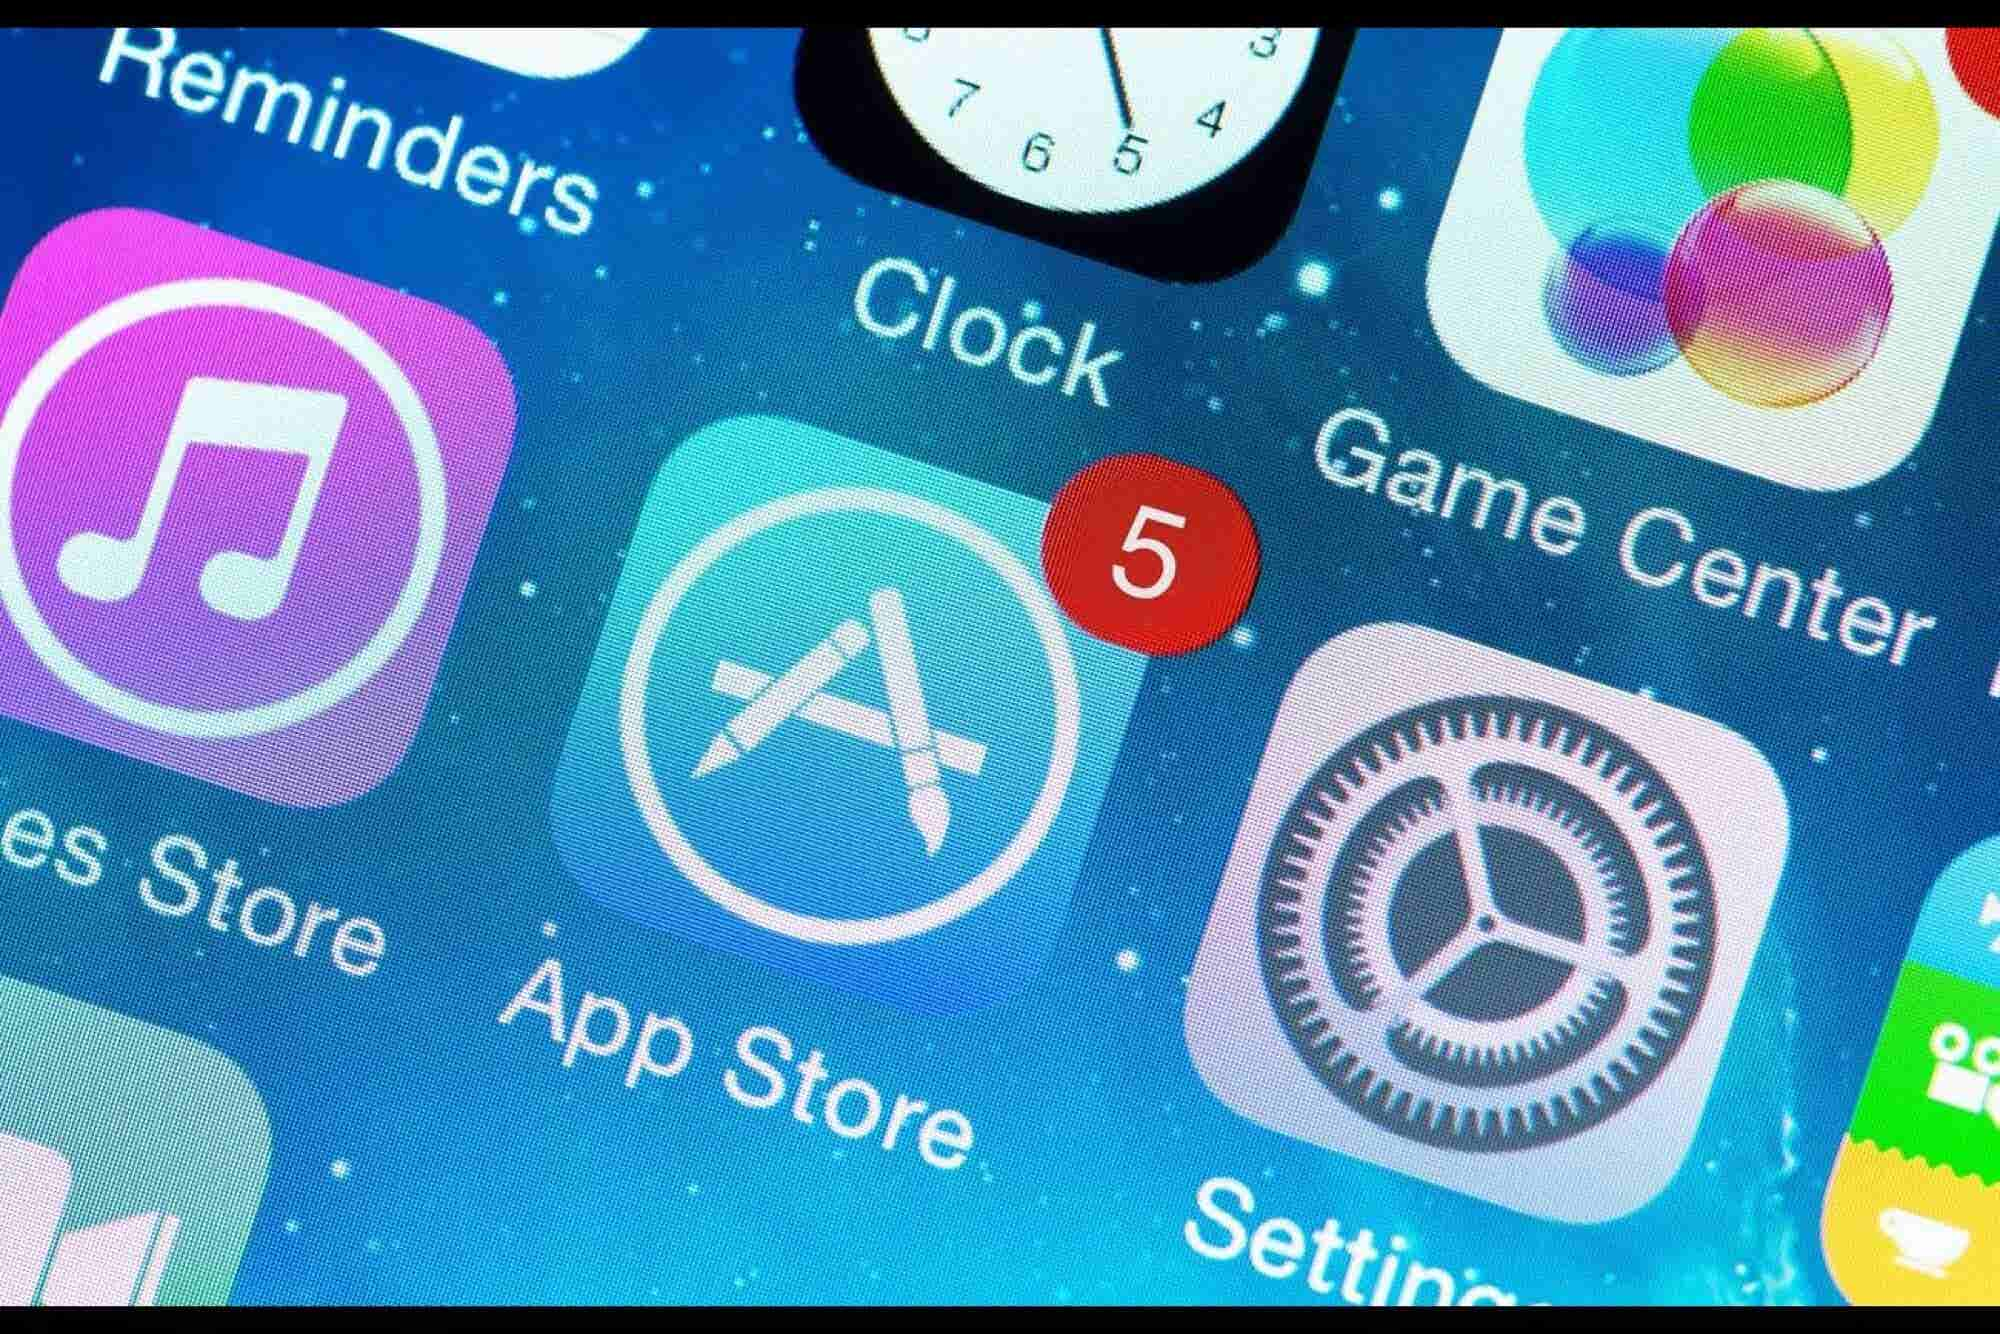 Stay on Top of Things With These 5 Helpful Apps